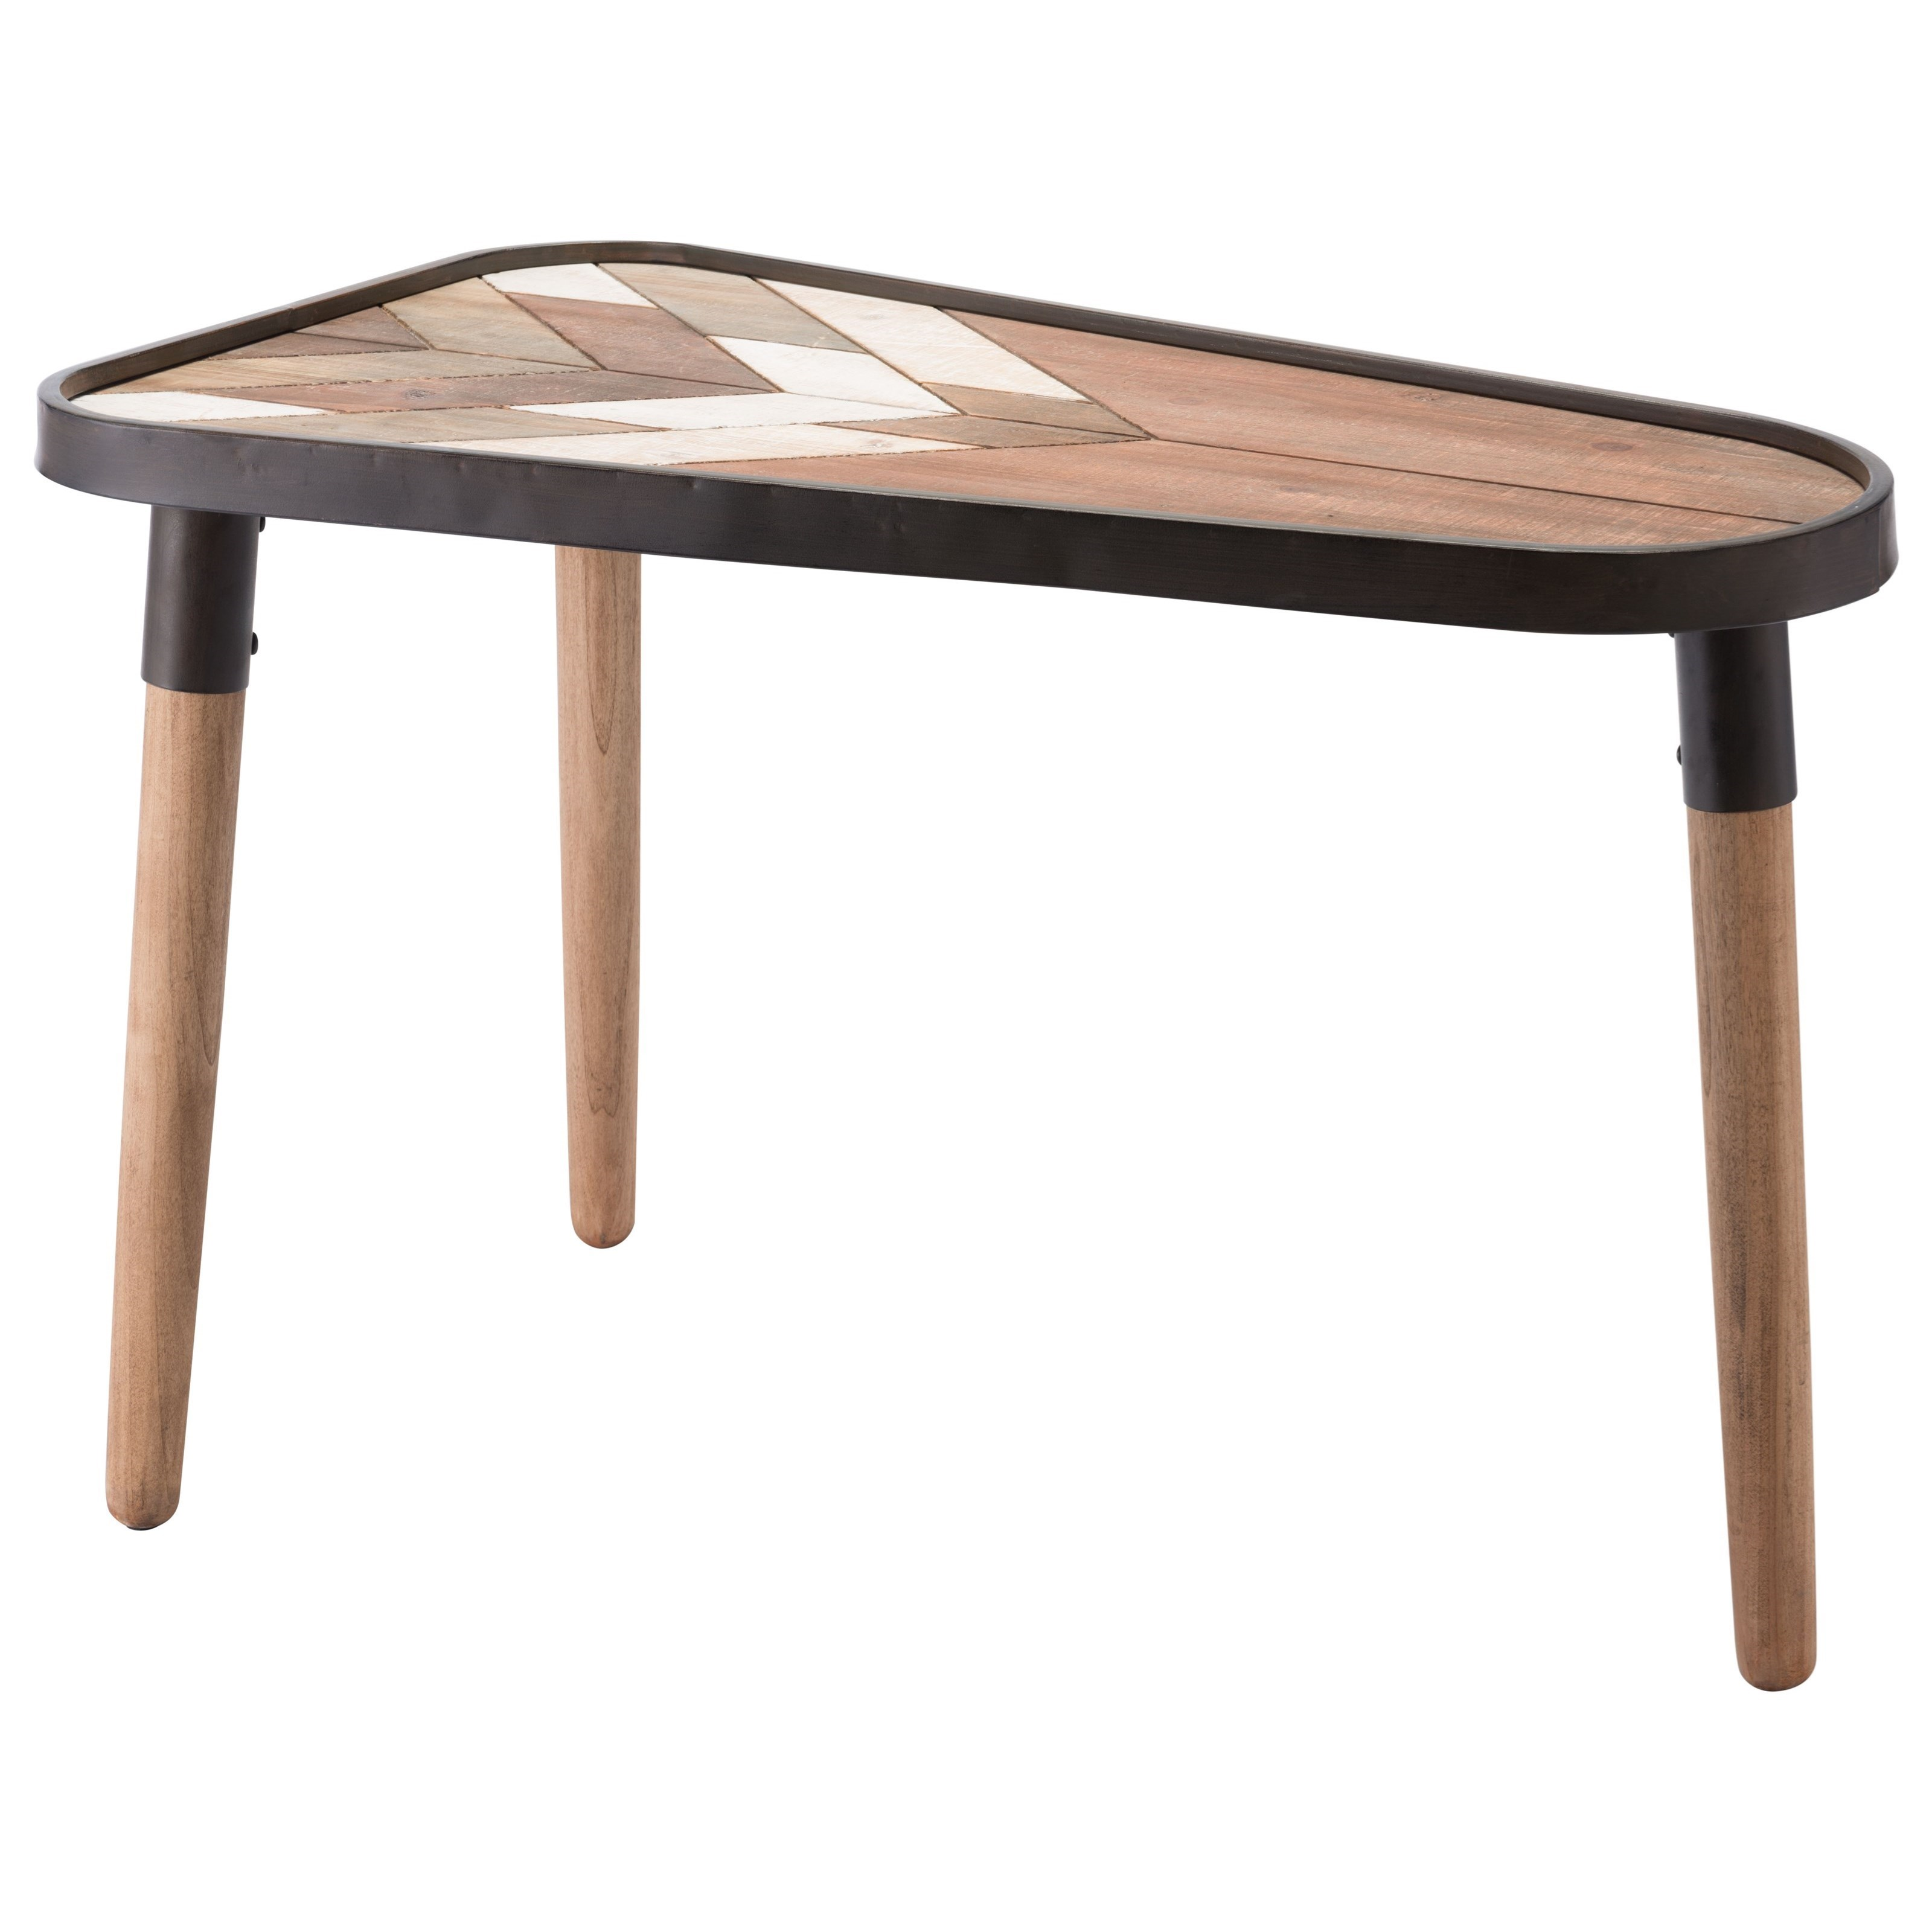 Zuo Accent Tables Arrow Table Large - Item Number: A10894